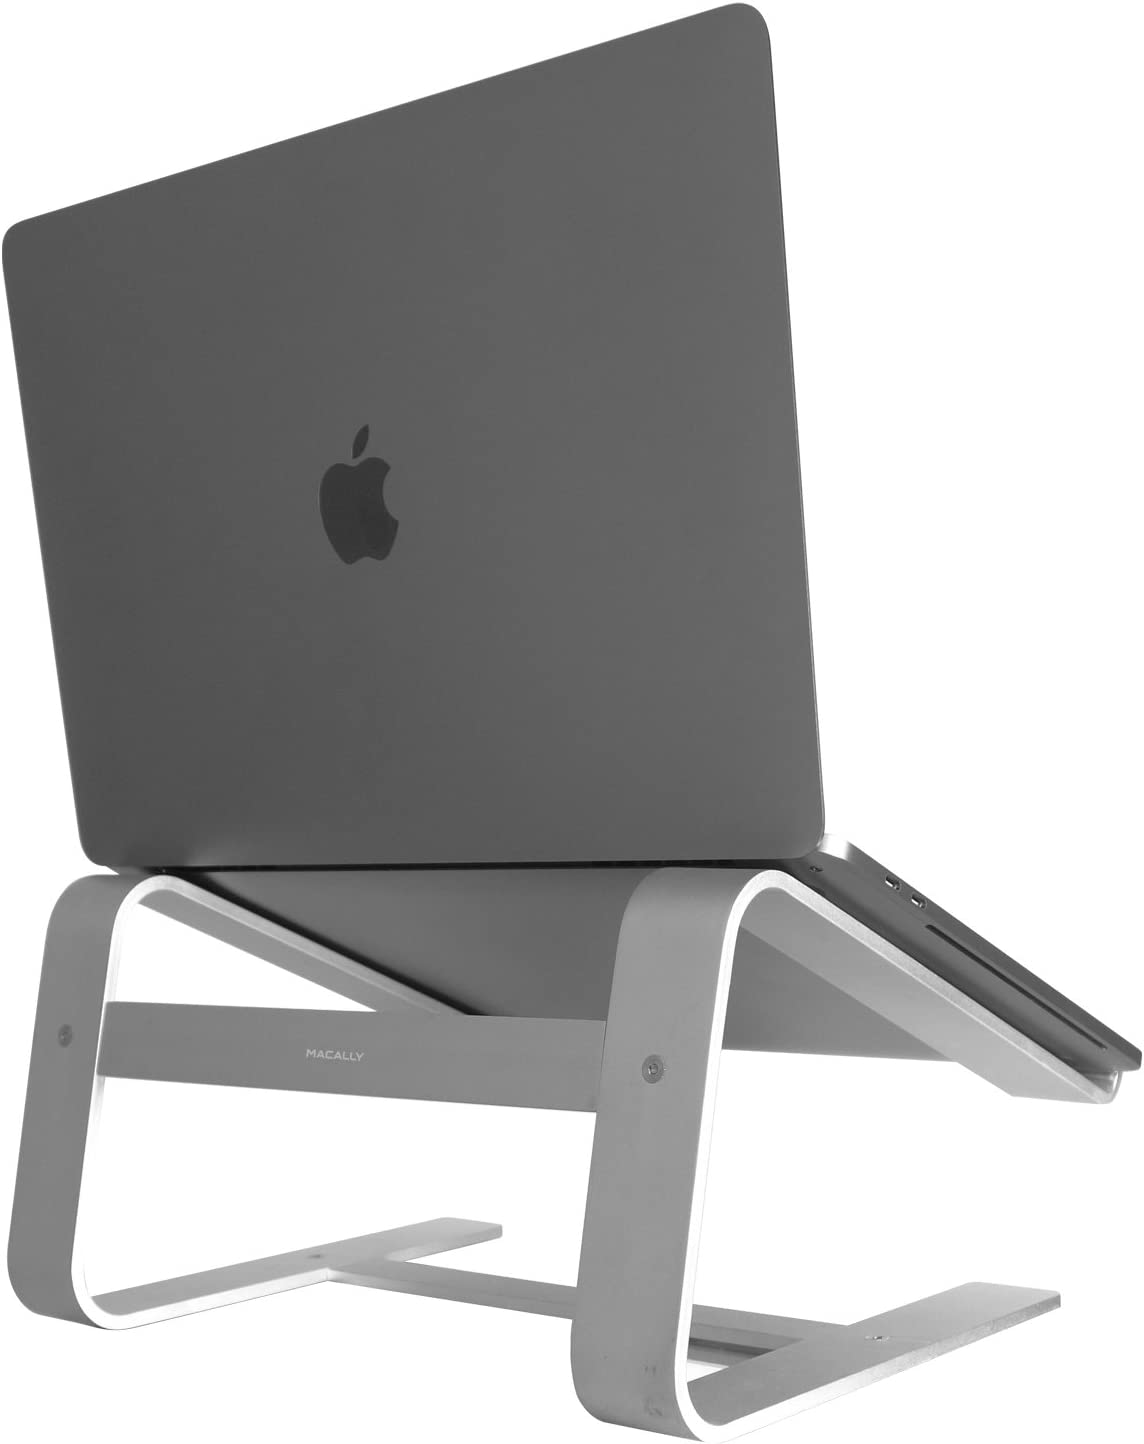 """Macally ASTAND Aluminum Laptop Stand for Apple MacBook, MacBook Air, MacBook Pro and Any Laptop Between 10"""" to 17"""" - Silver"""